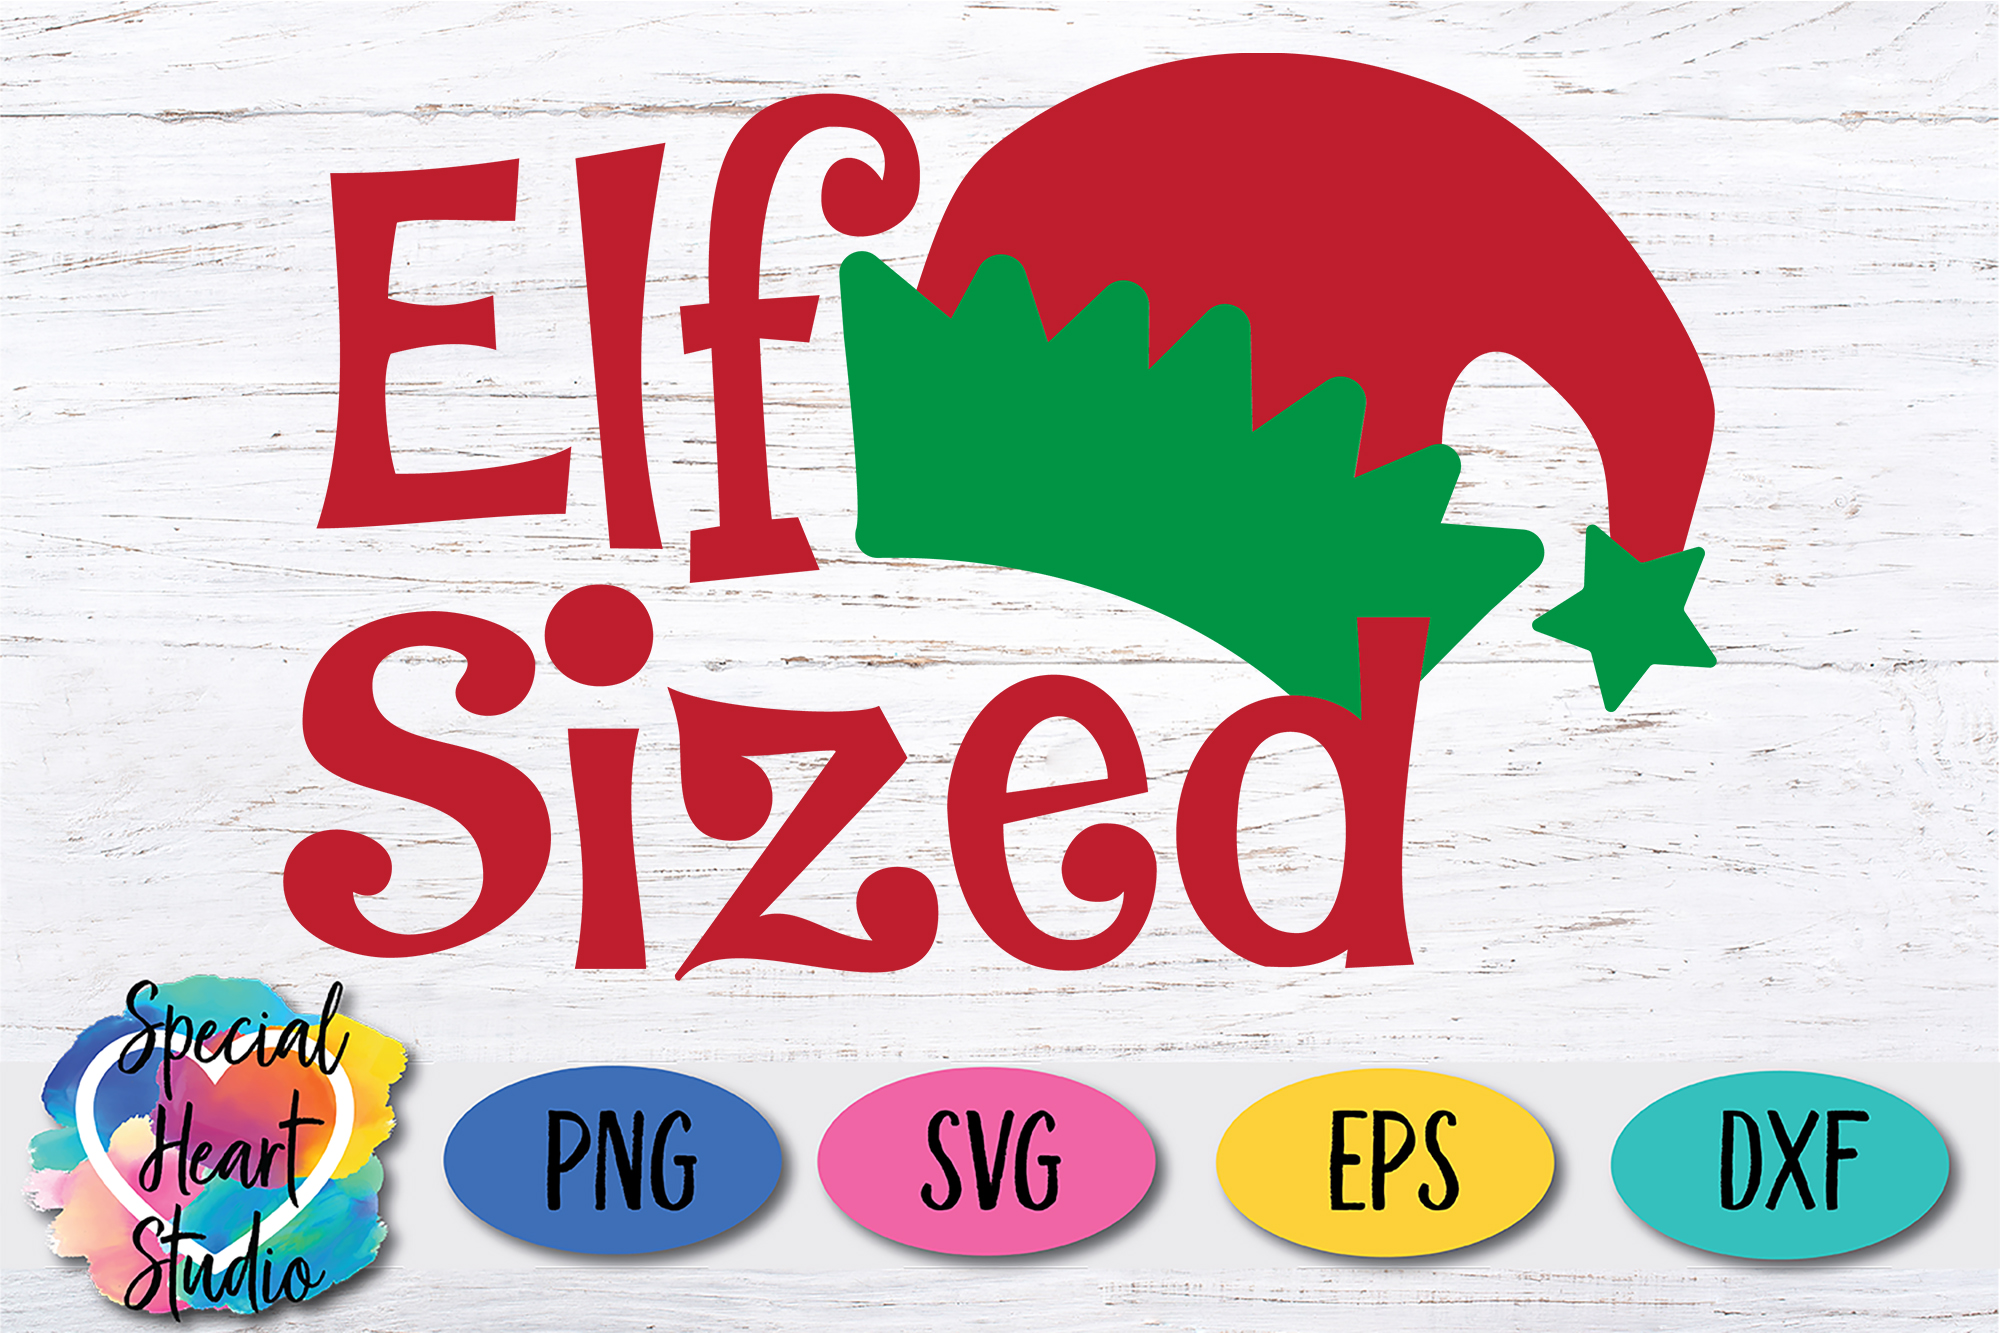 Elf Sized - A Fun Christmas SVG Cut File example image 2